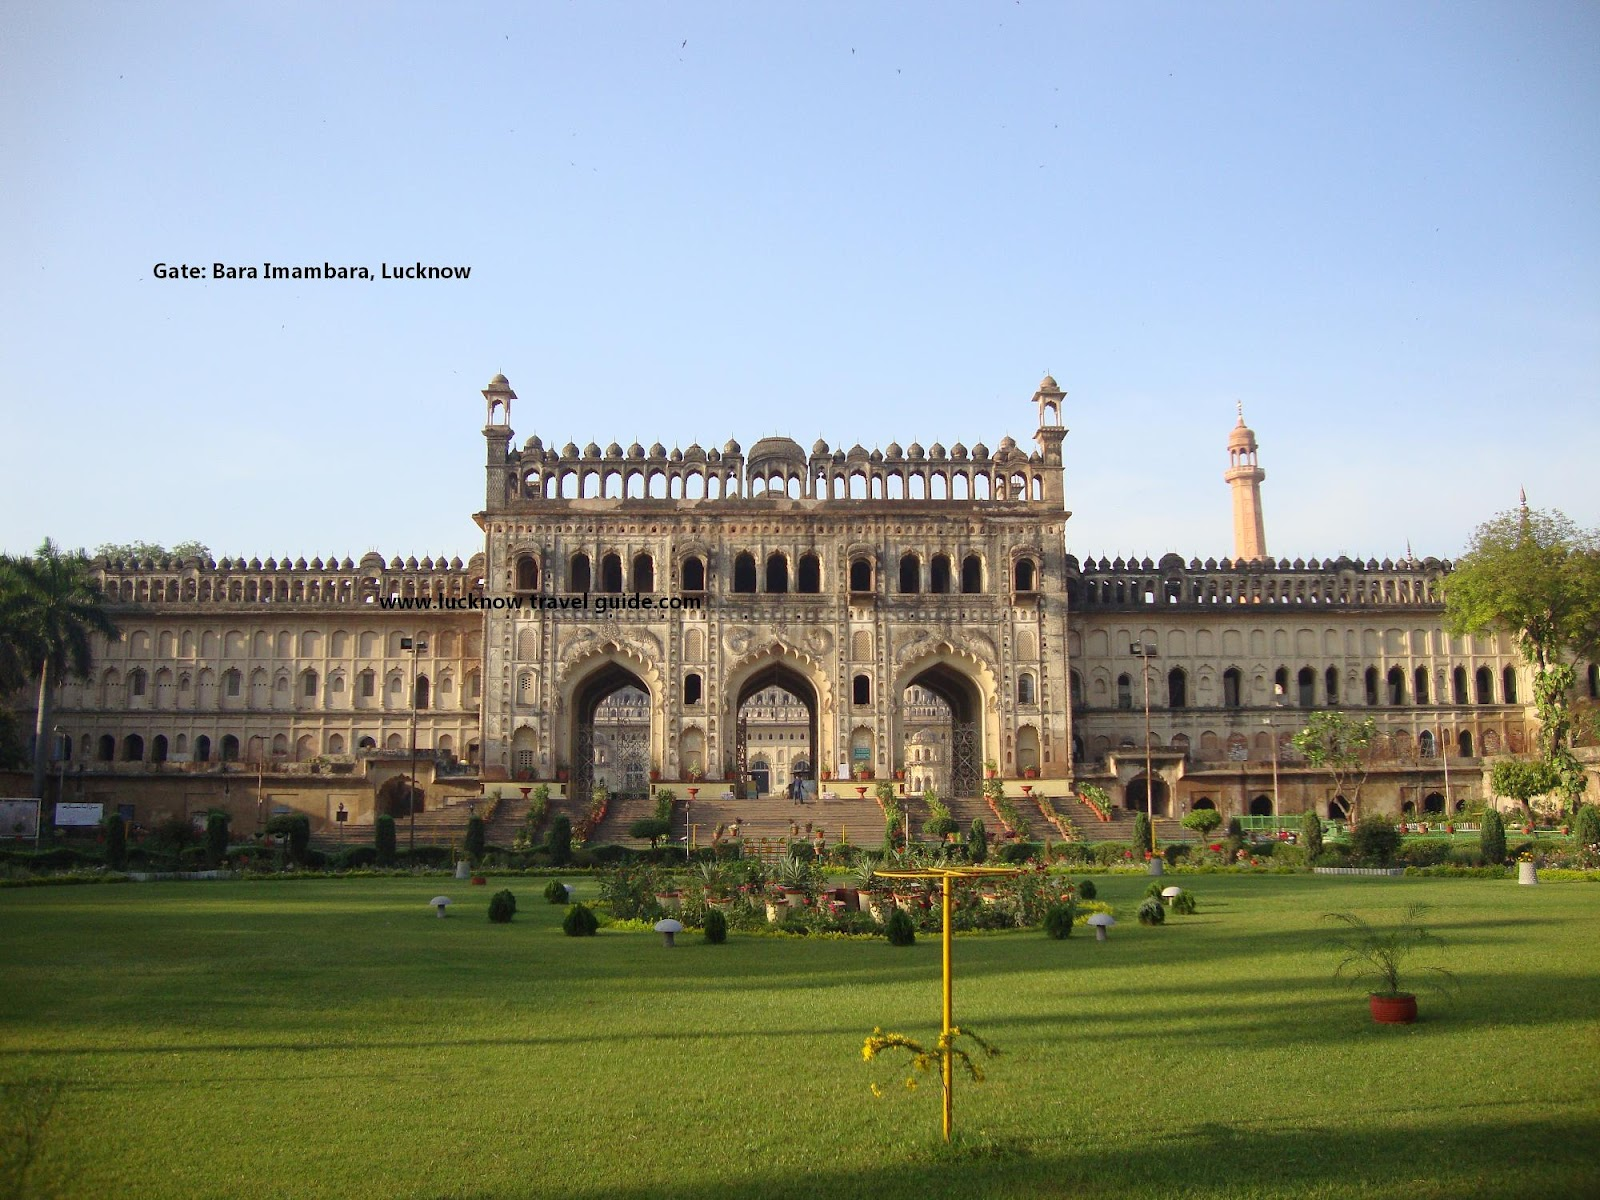 bara imambara Amazing architecture, but the month - and the weather - made it a less than stellar experience we plan on returning to lucknow when it's not as foggy and dreary, and exploring the bara imambara further.